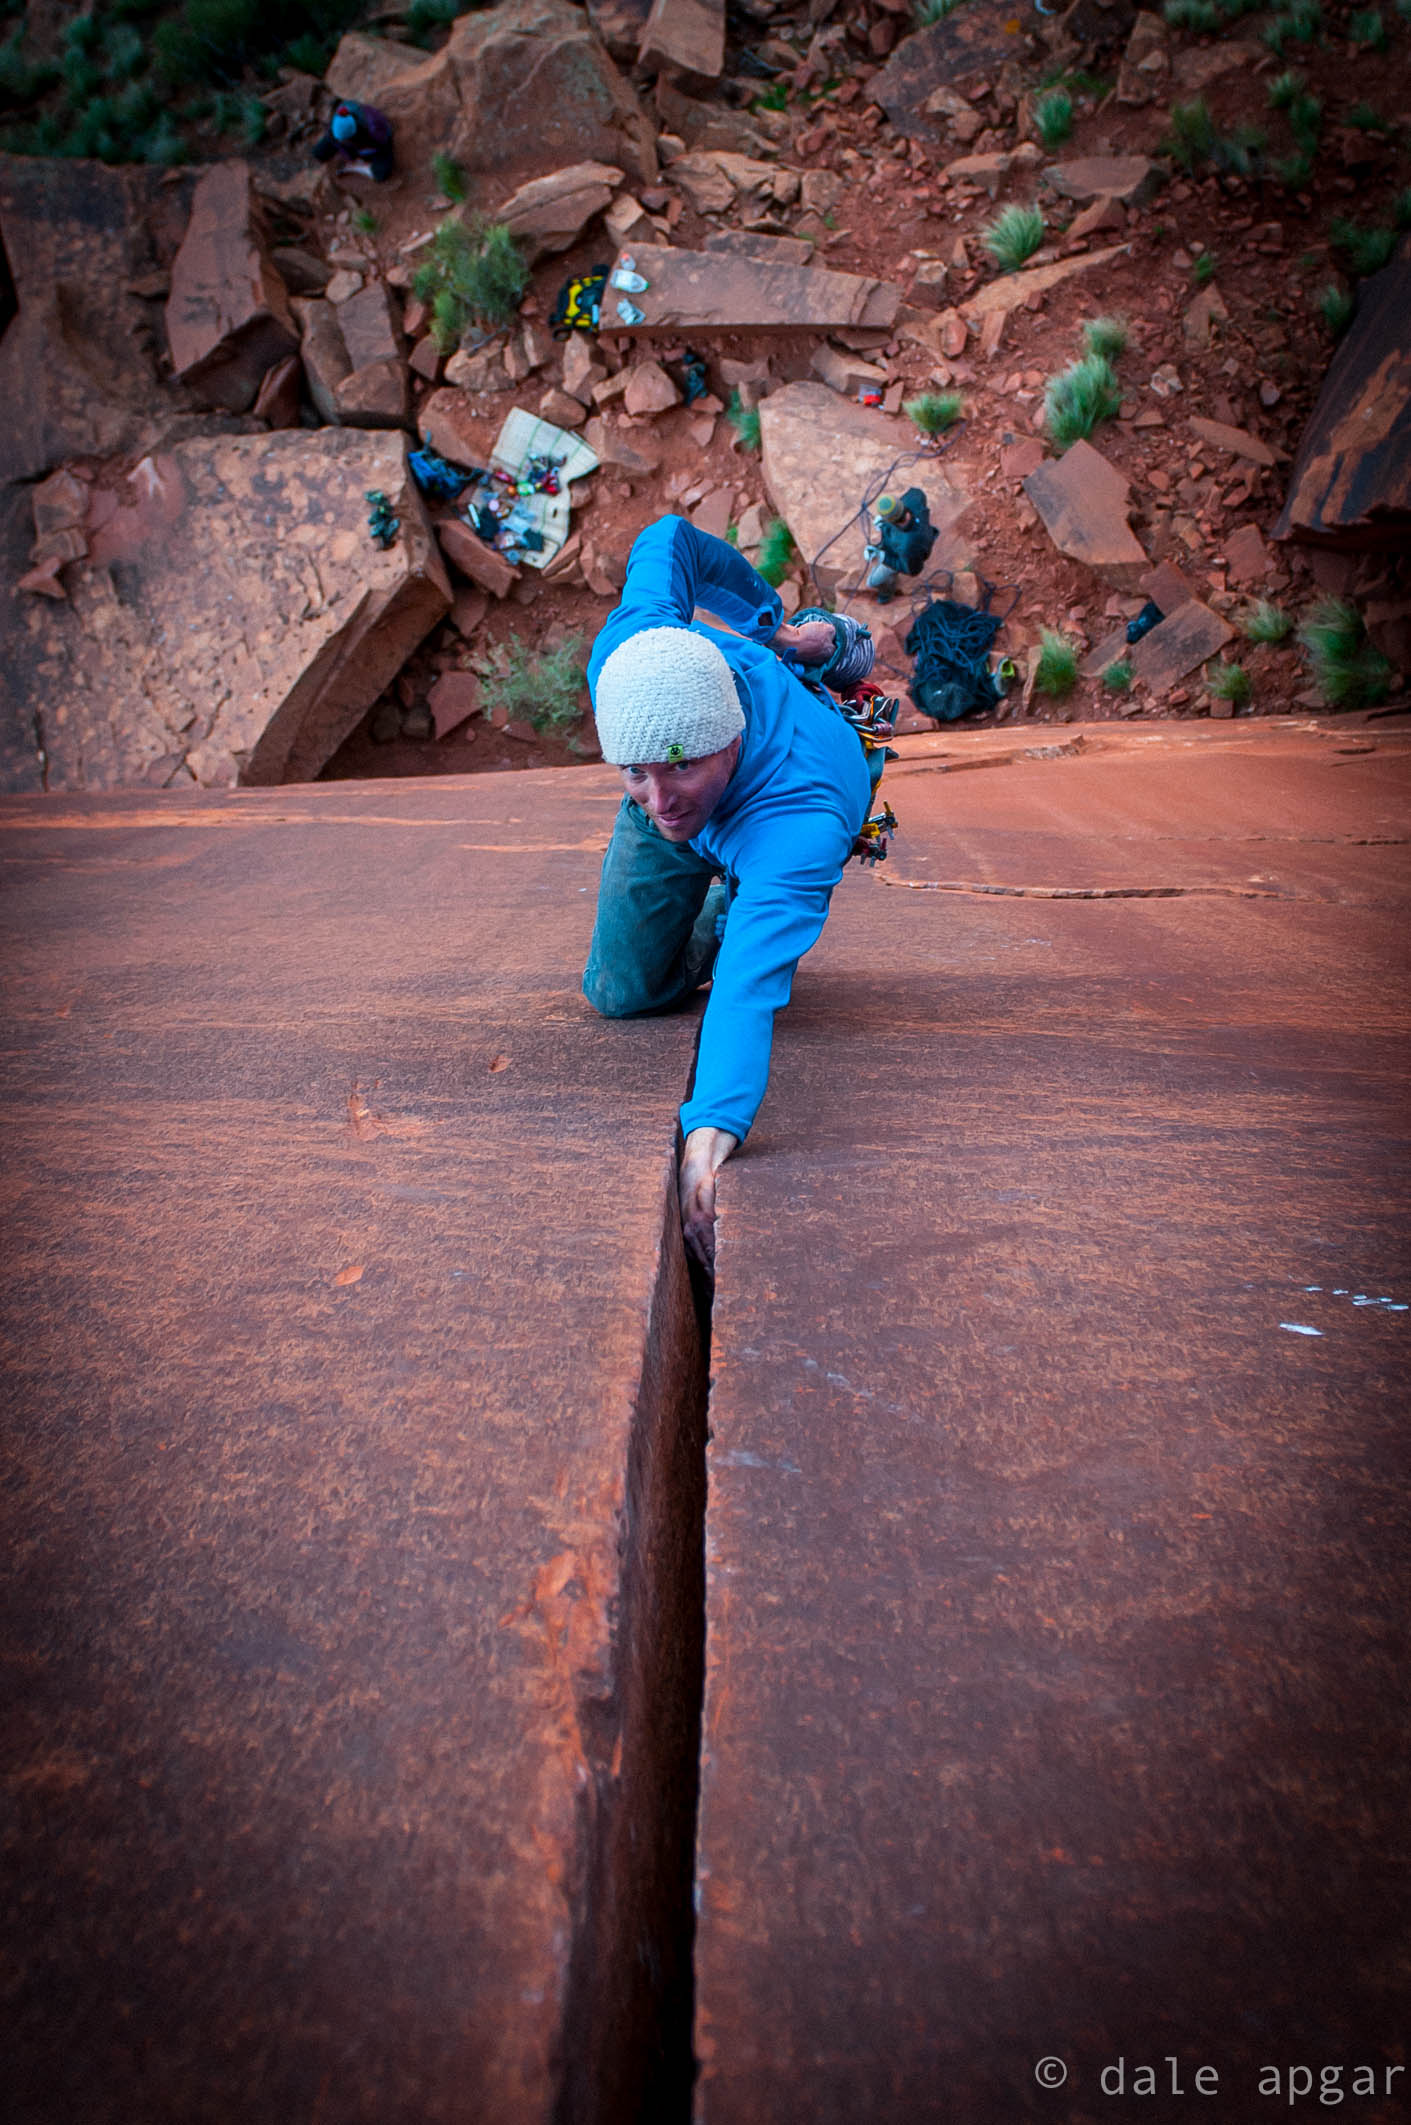 Jed Porter experiencing hand jam heroics at the Cliffs of Insanity